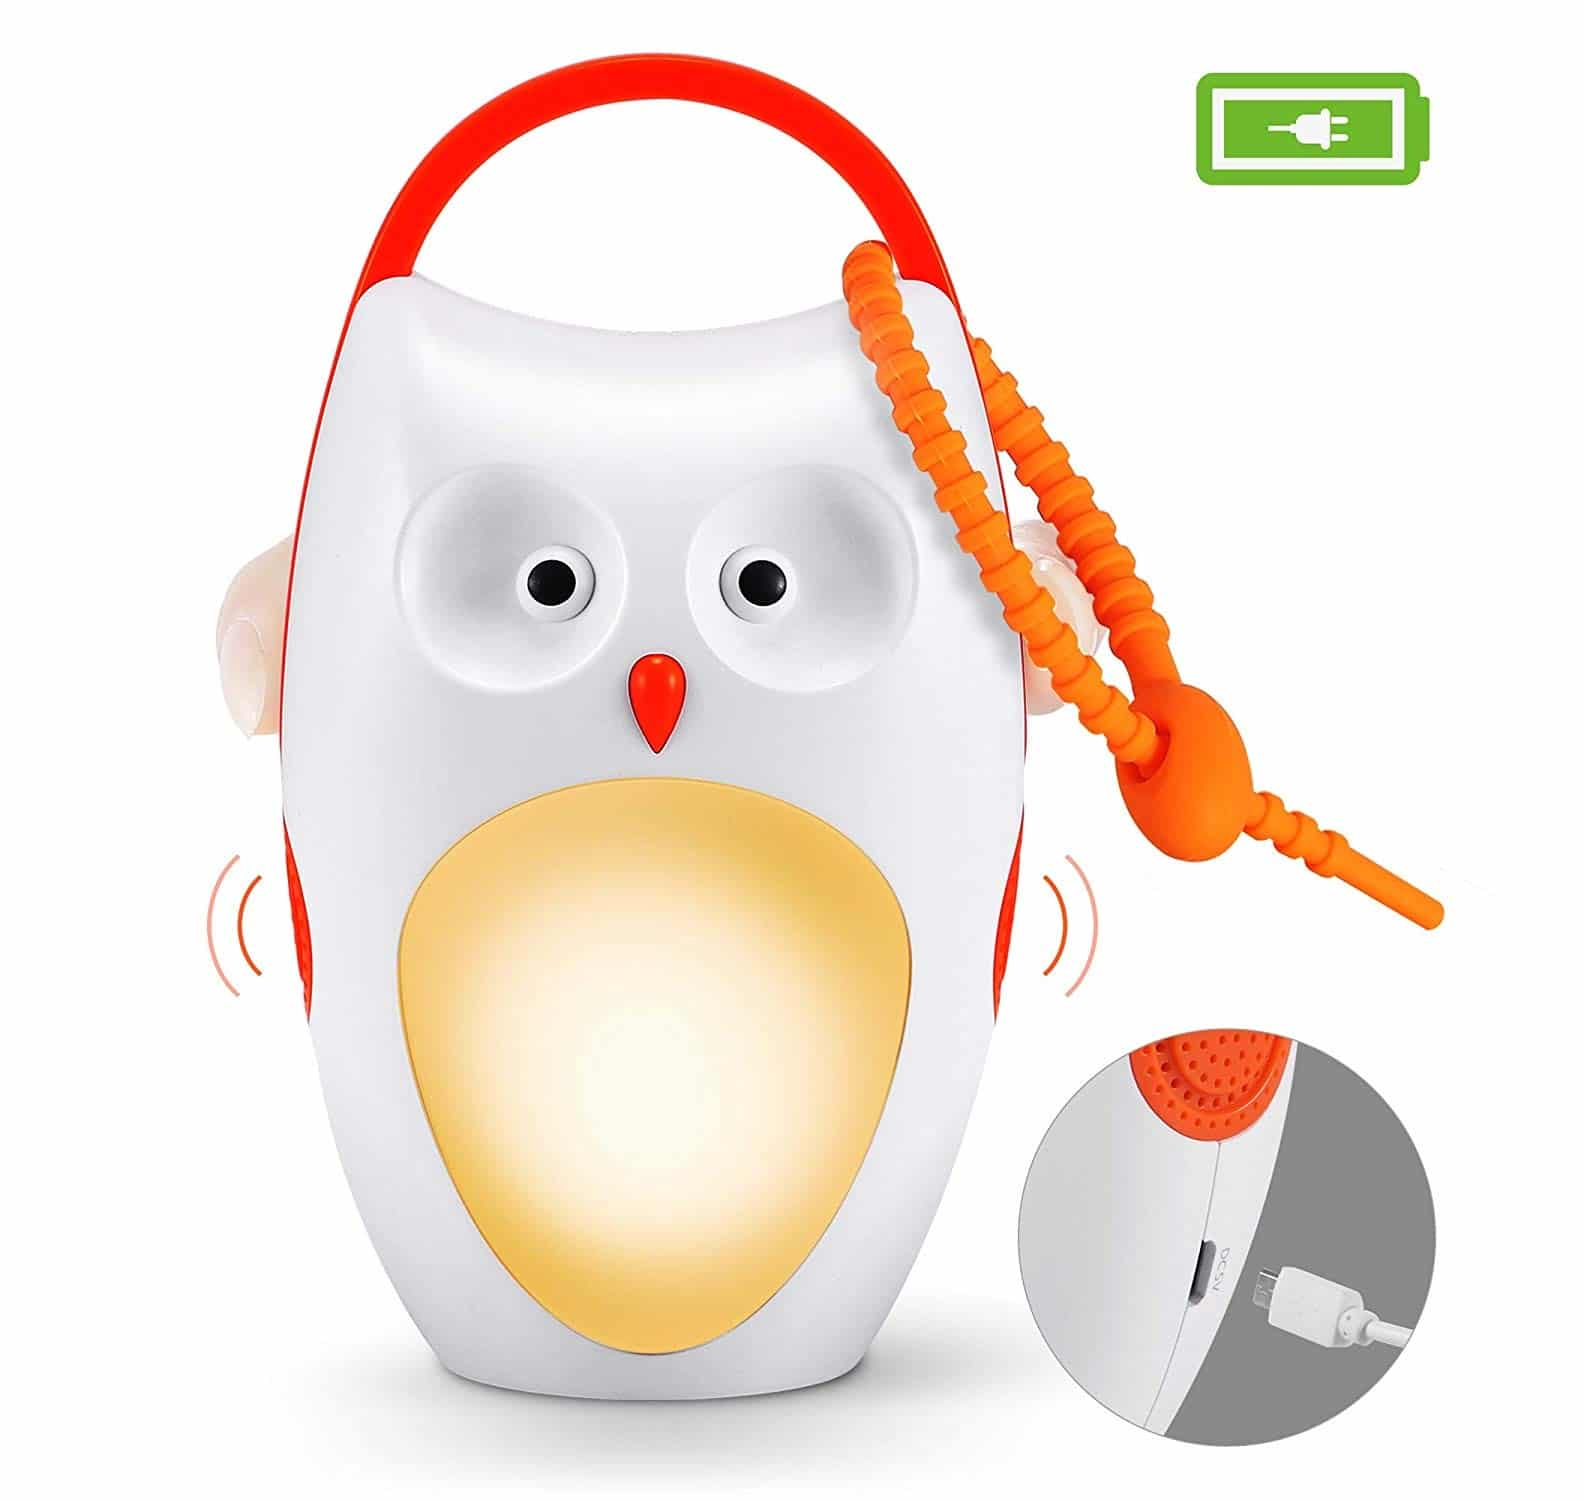 11.Baby Sleep Soother Shusher Sound Machines, Baby Gift, Rechargeable Portable White Noise Machine with Night Light, 8 Soothing Sounds